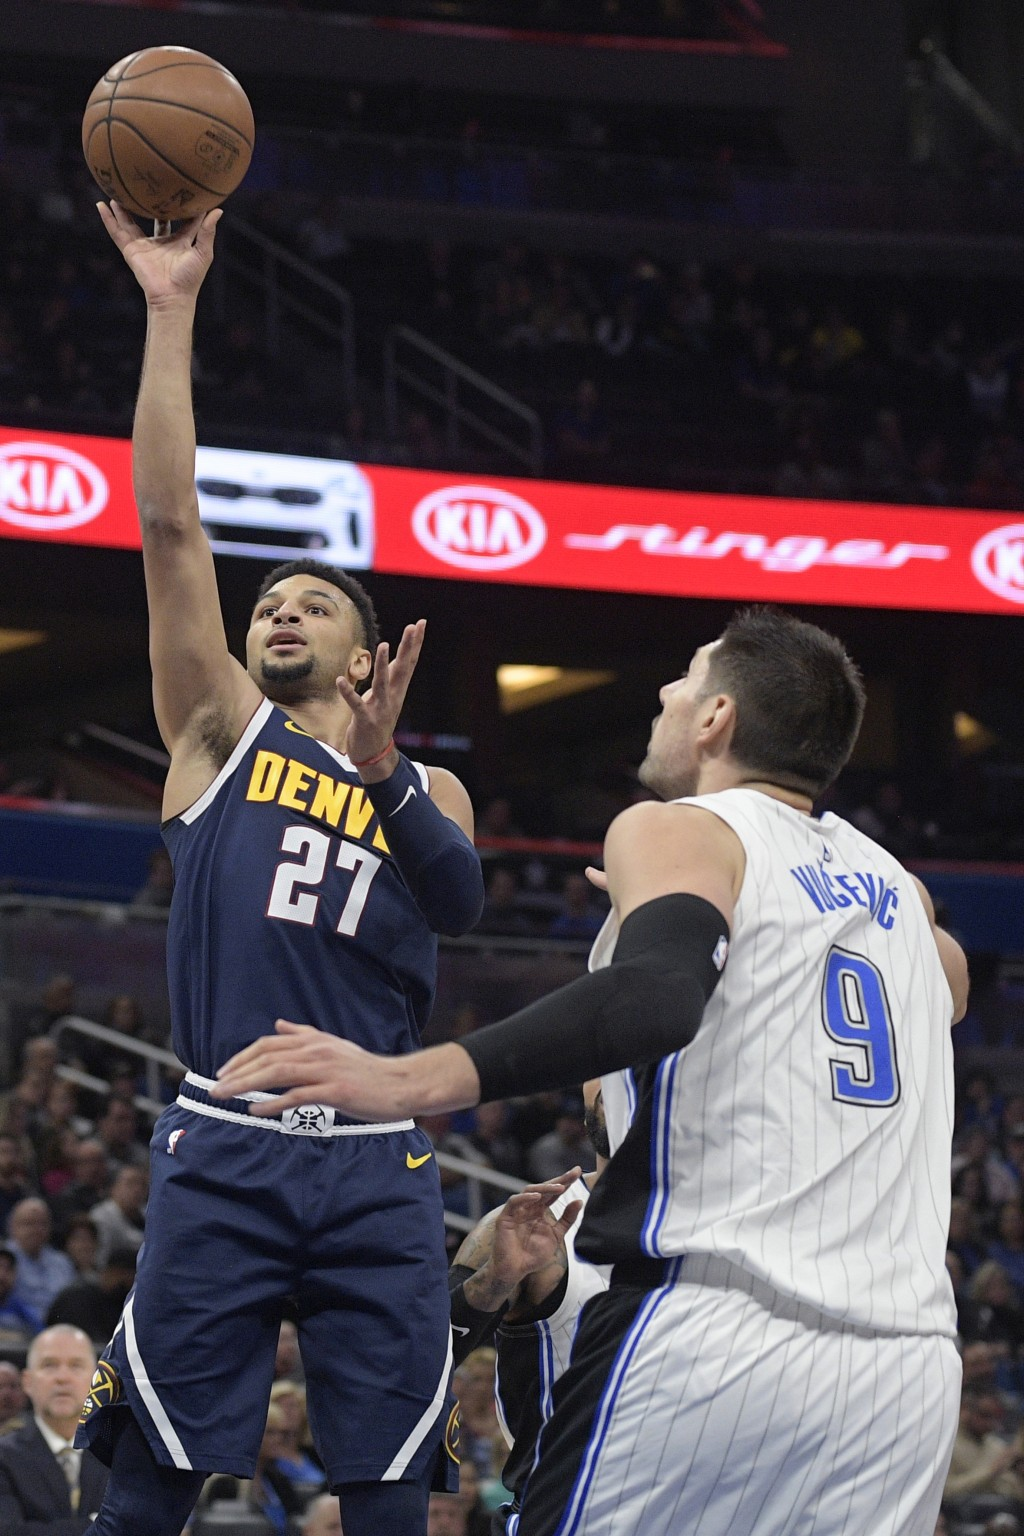 Denver Nuggets guard Jamal Murray (27) goes up for a shot in front of Orlando Magic center Nikola Vucevic (9) during the first half of an NBA basketba